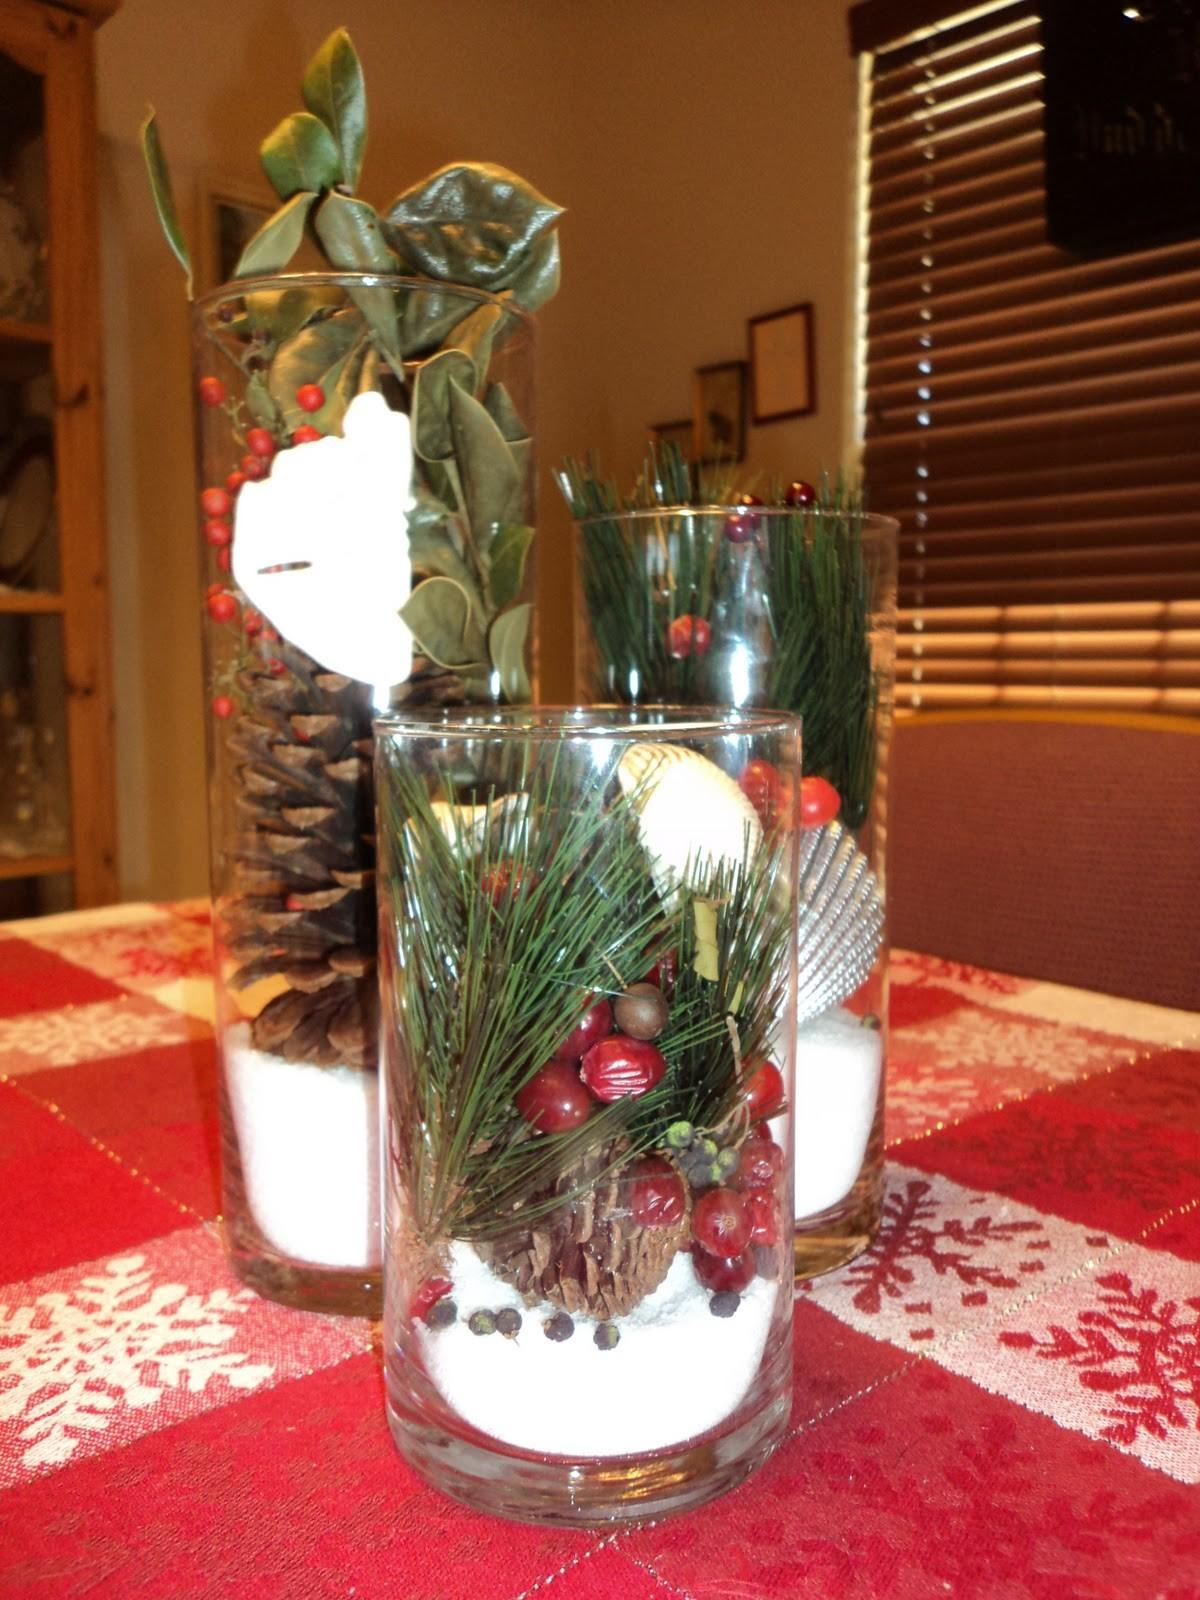 Mesmerizing Christmas Table Decorations Red White